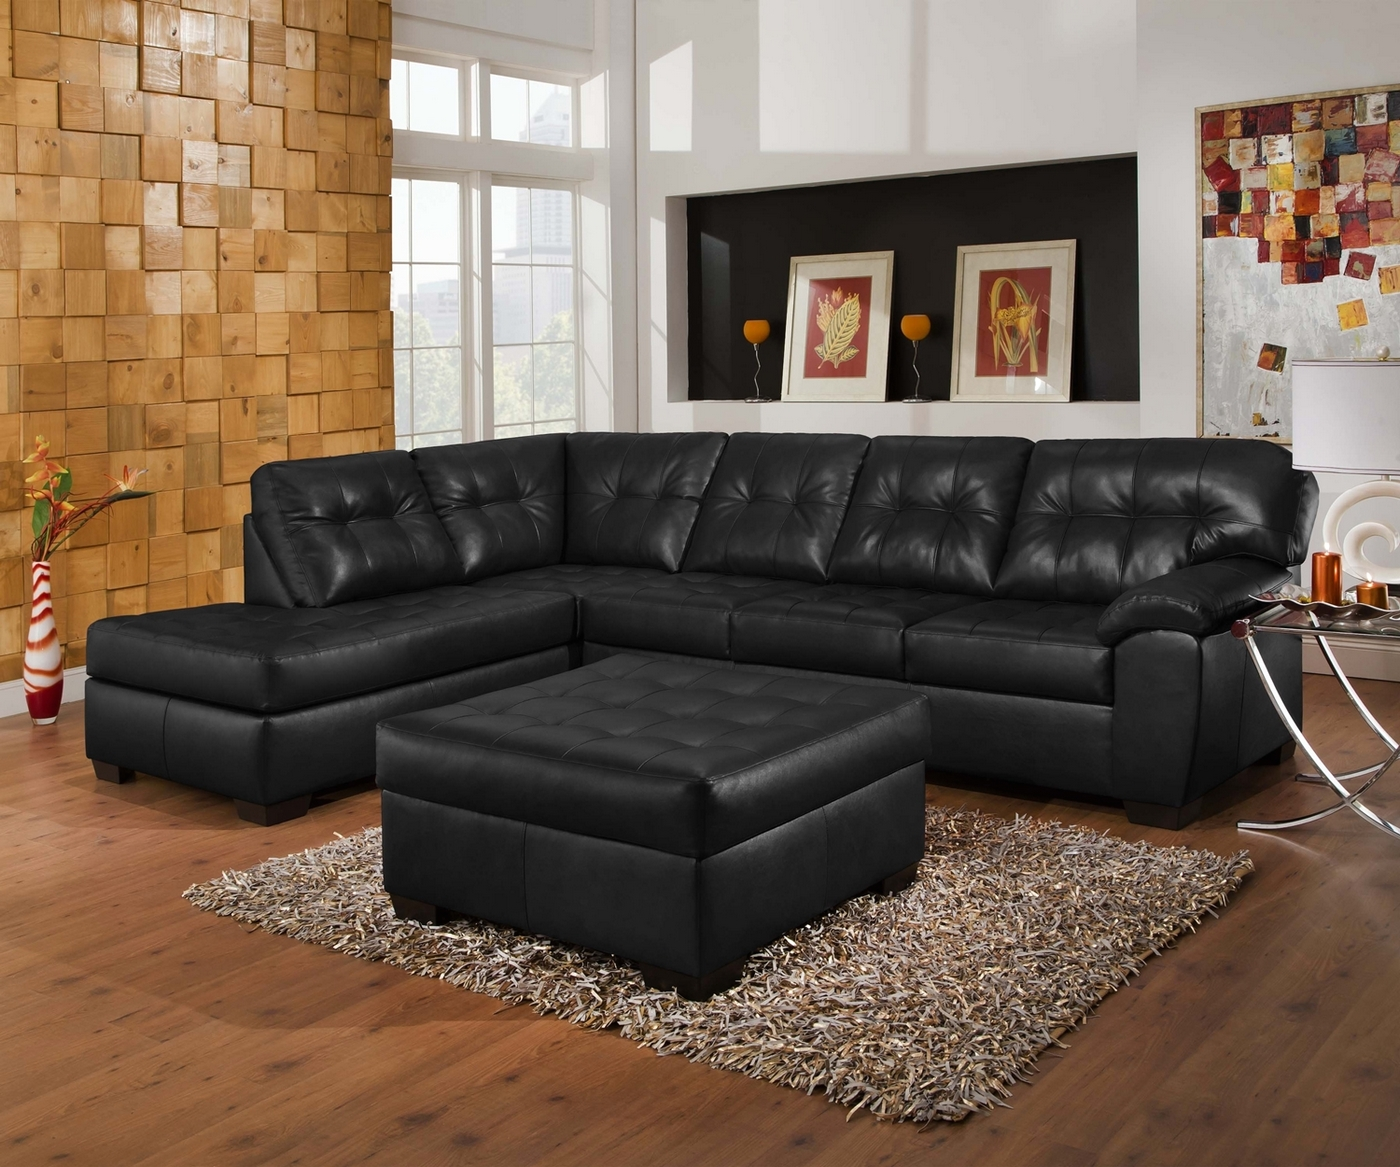 Soho contemporary onyx leather sectional sofa w left chaise for Bonded leather sectional with chaise